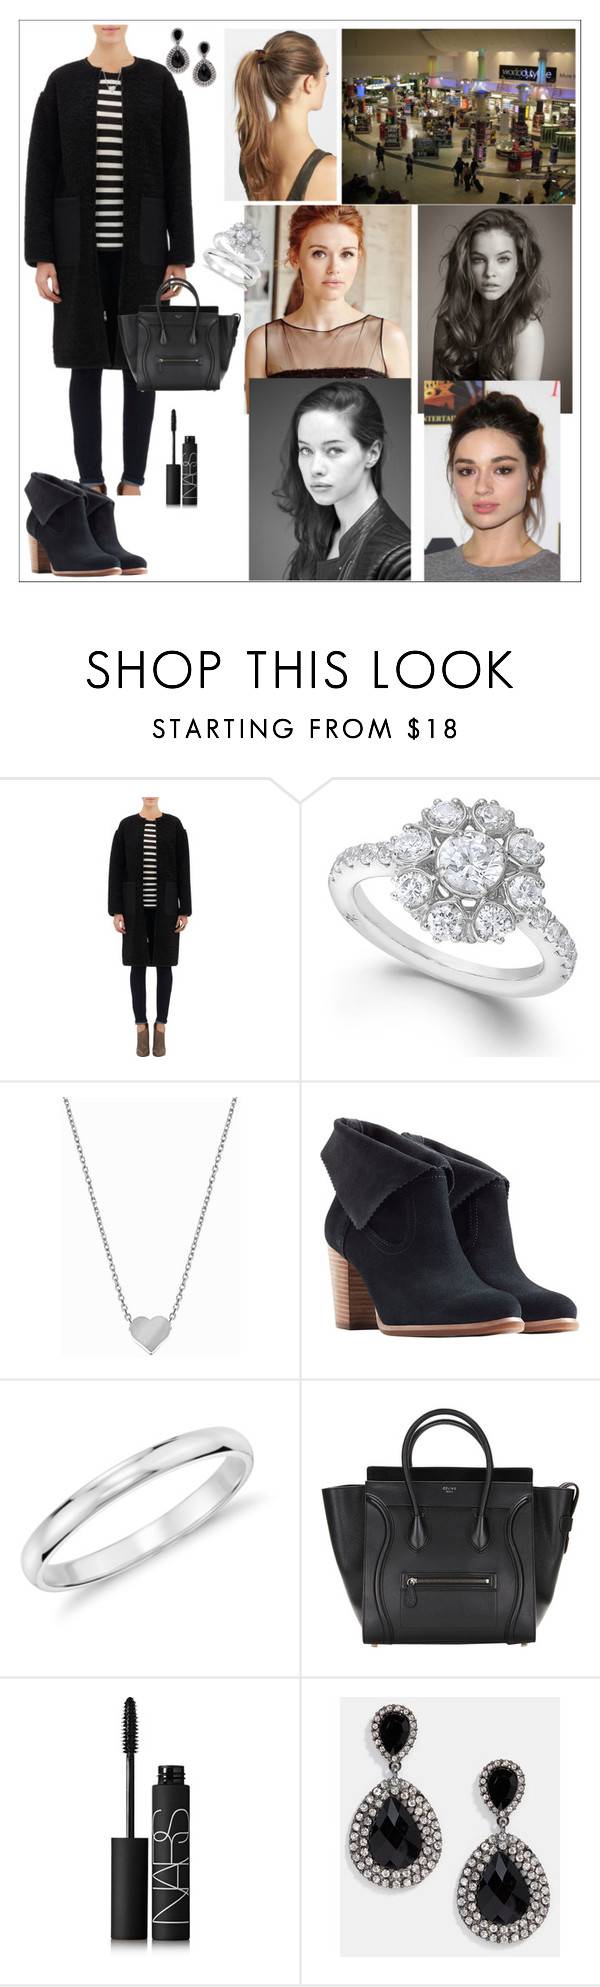 """Eleanor went shopping with her friends"" by eleanorrosalie ❤ liked on Polyvore featuring Ashley B, Marchesa, Minnie Grace, UGG Australia, Blue Nile, NARS Cosmetics, DesignSix and France Luxe"